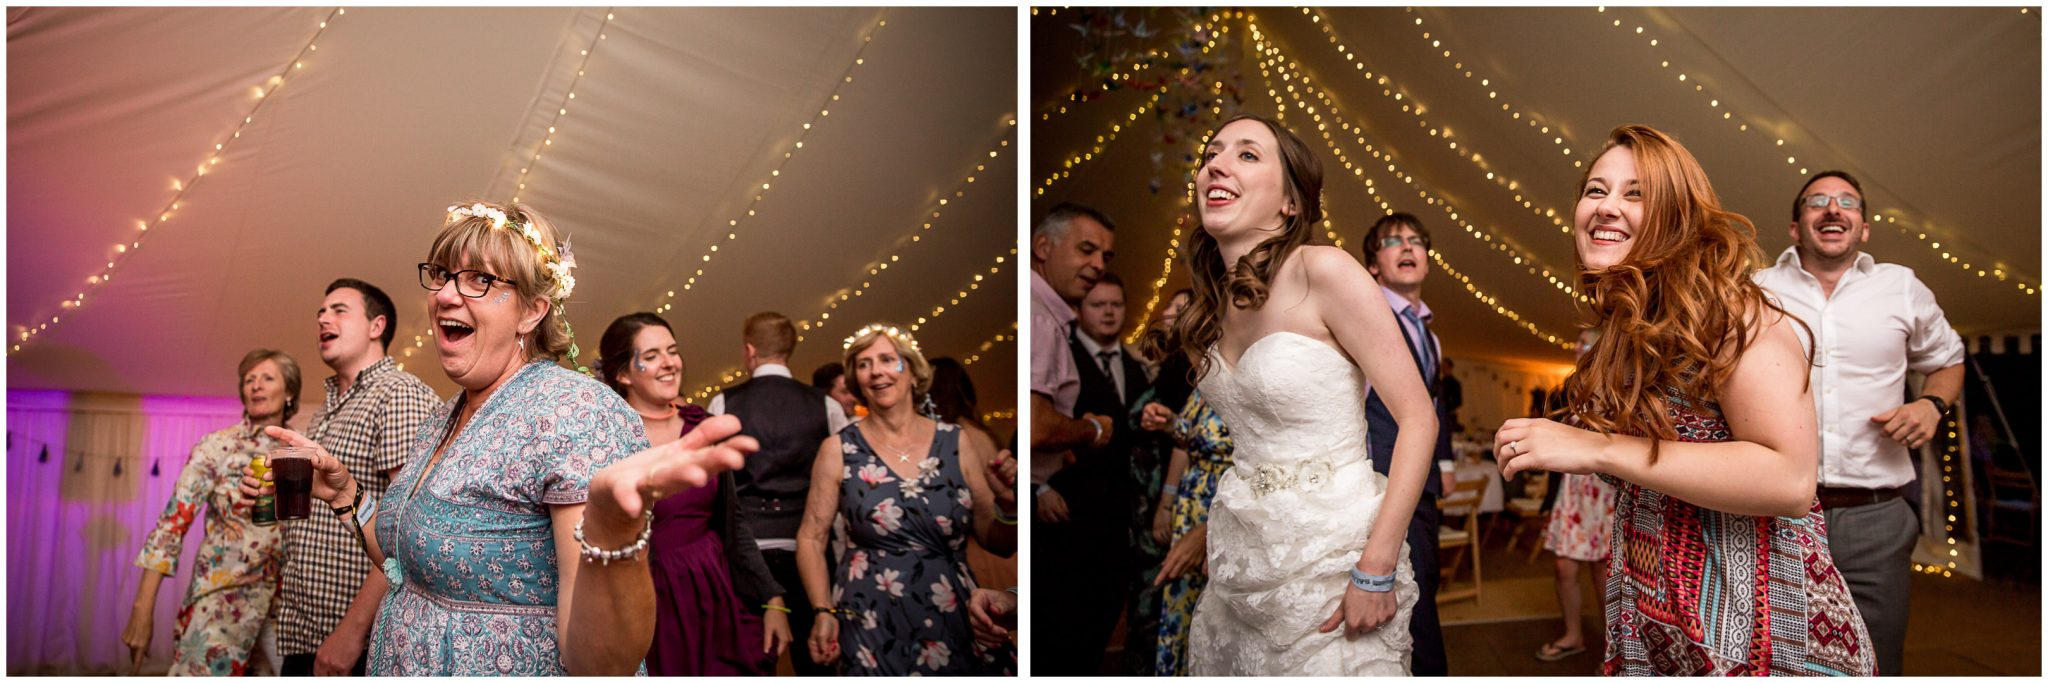 Timsbury Manor Festival Wedding friends and family dancing